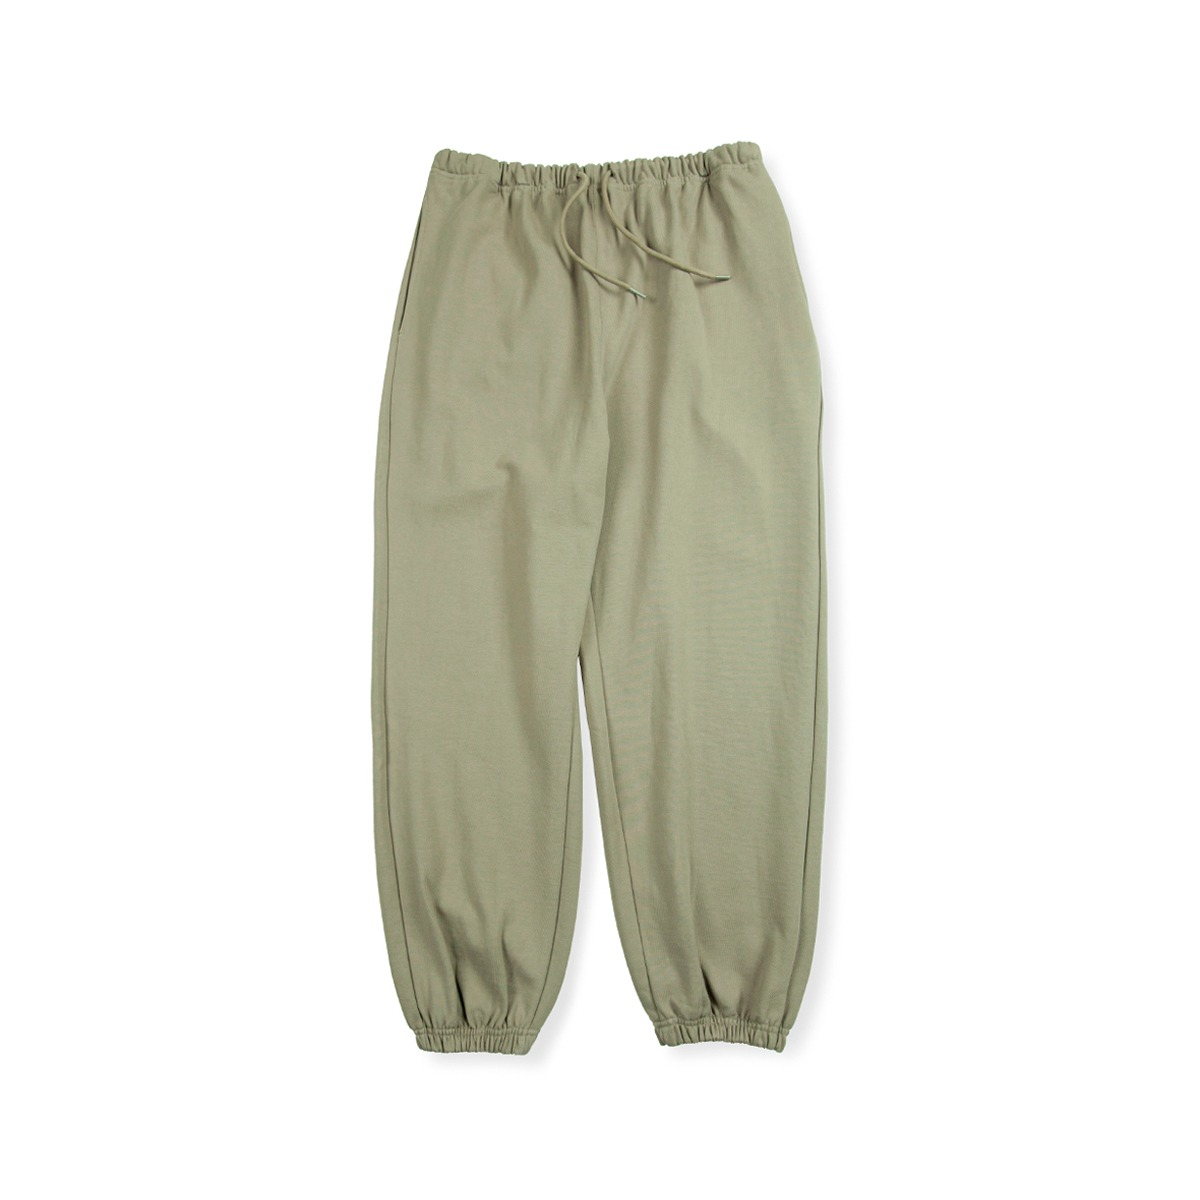 [BROWNYARD] HARD TWIST SWEAT PANTS 'LIGHT OLIVE'